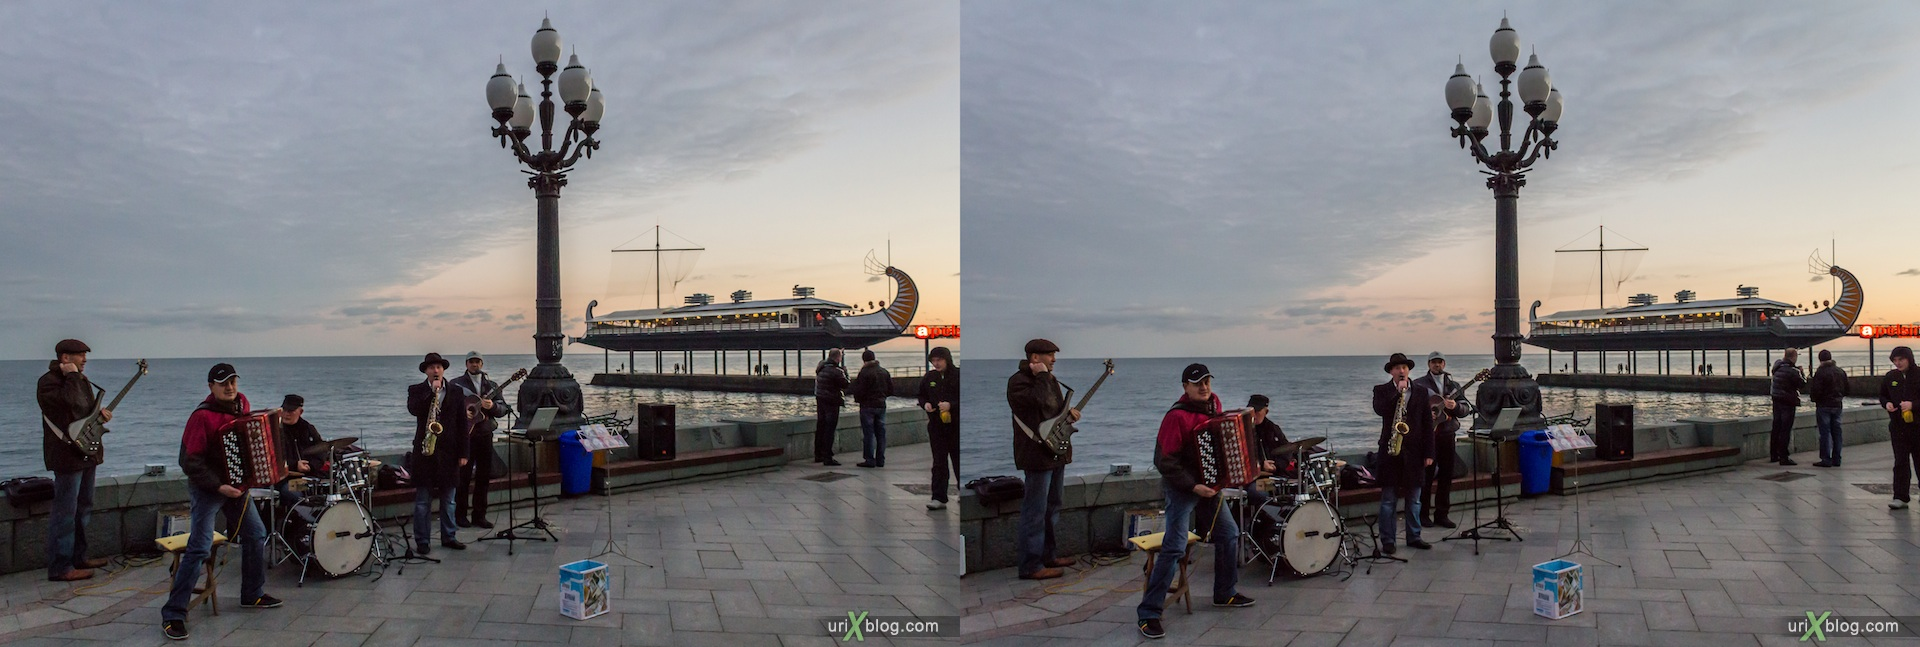 2012, musicians, Imeni Lenina embankment, beach, Apelsin cafe, Yalta, sea, evening, coast city, Crimea, Ukraine, 3D, stereo pair, cross-eyed, crossview, cross view stereo pair, stereoscopic